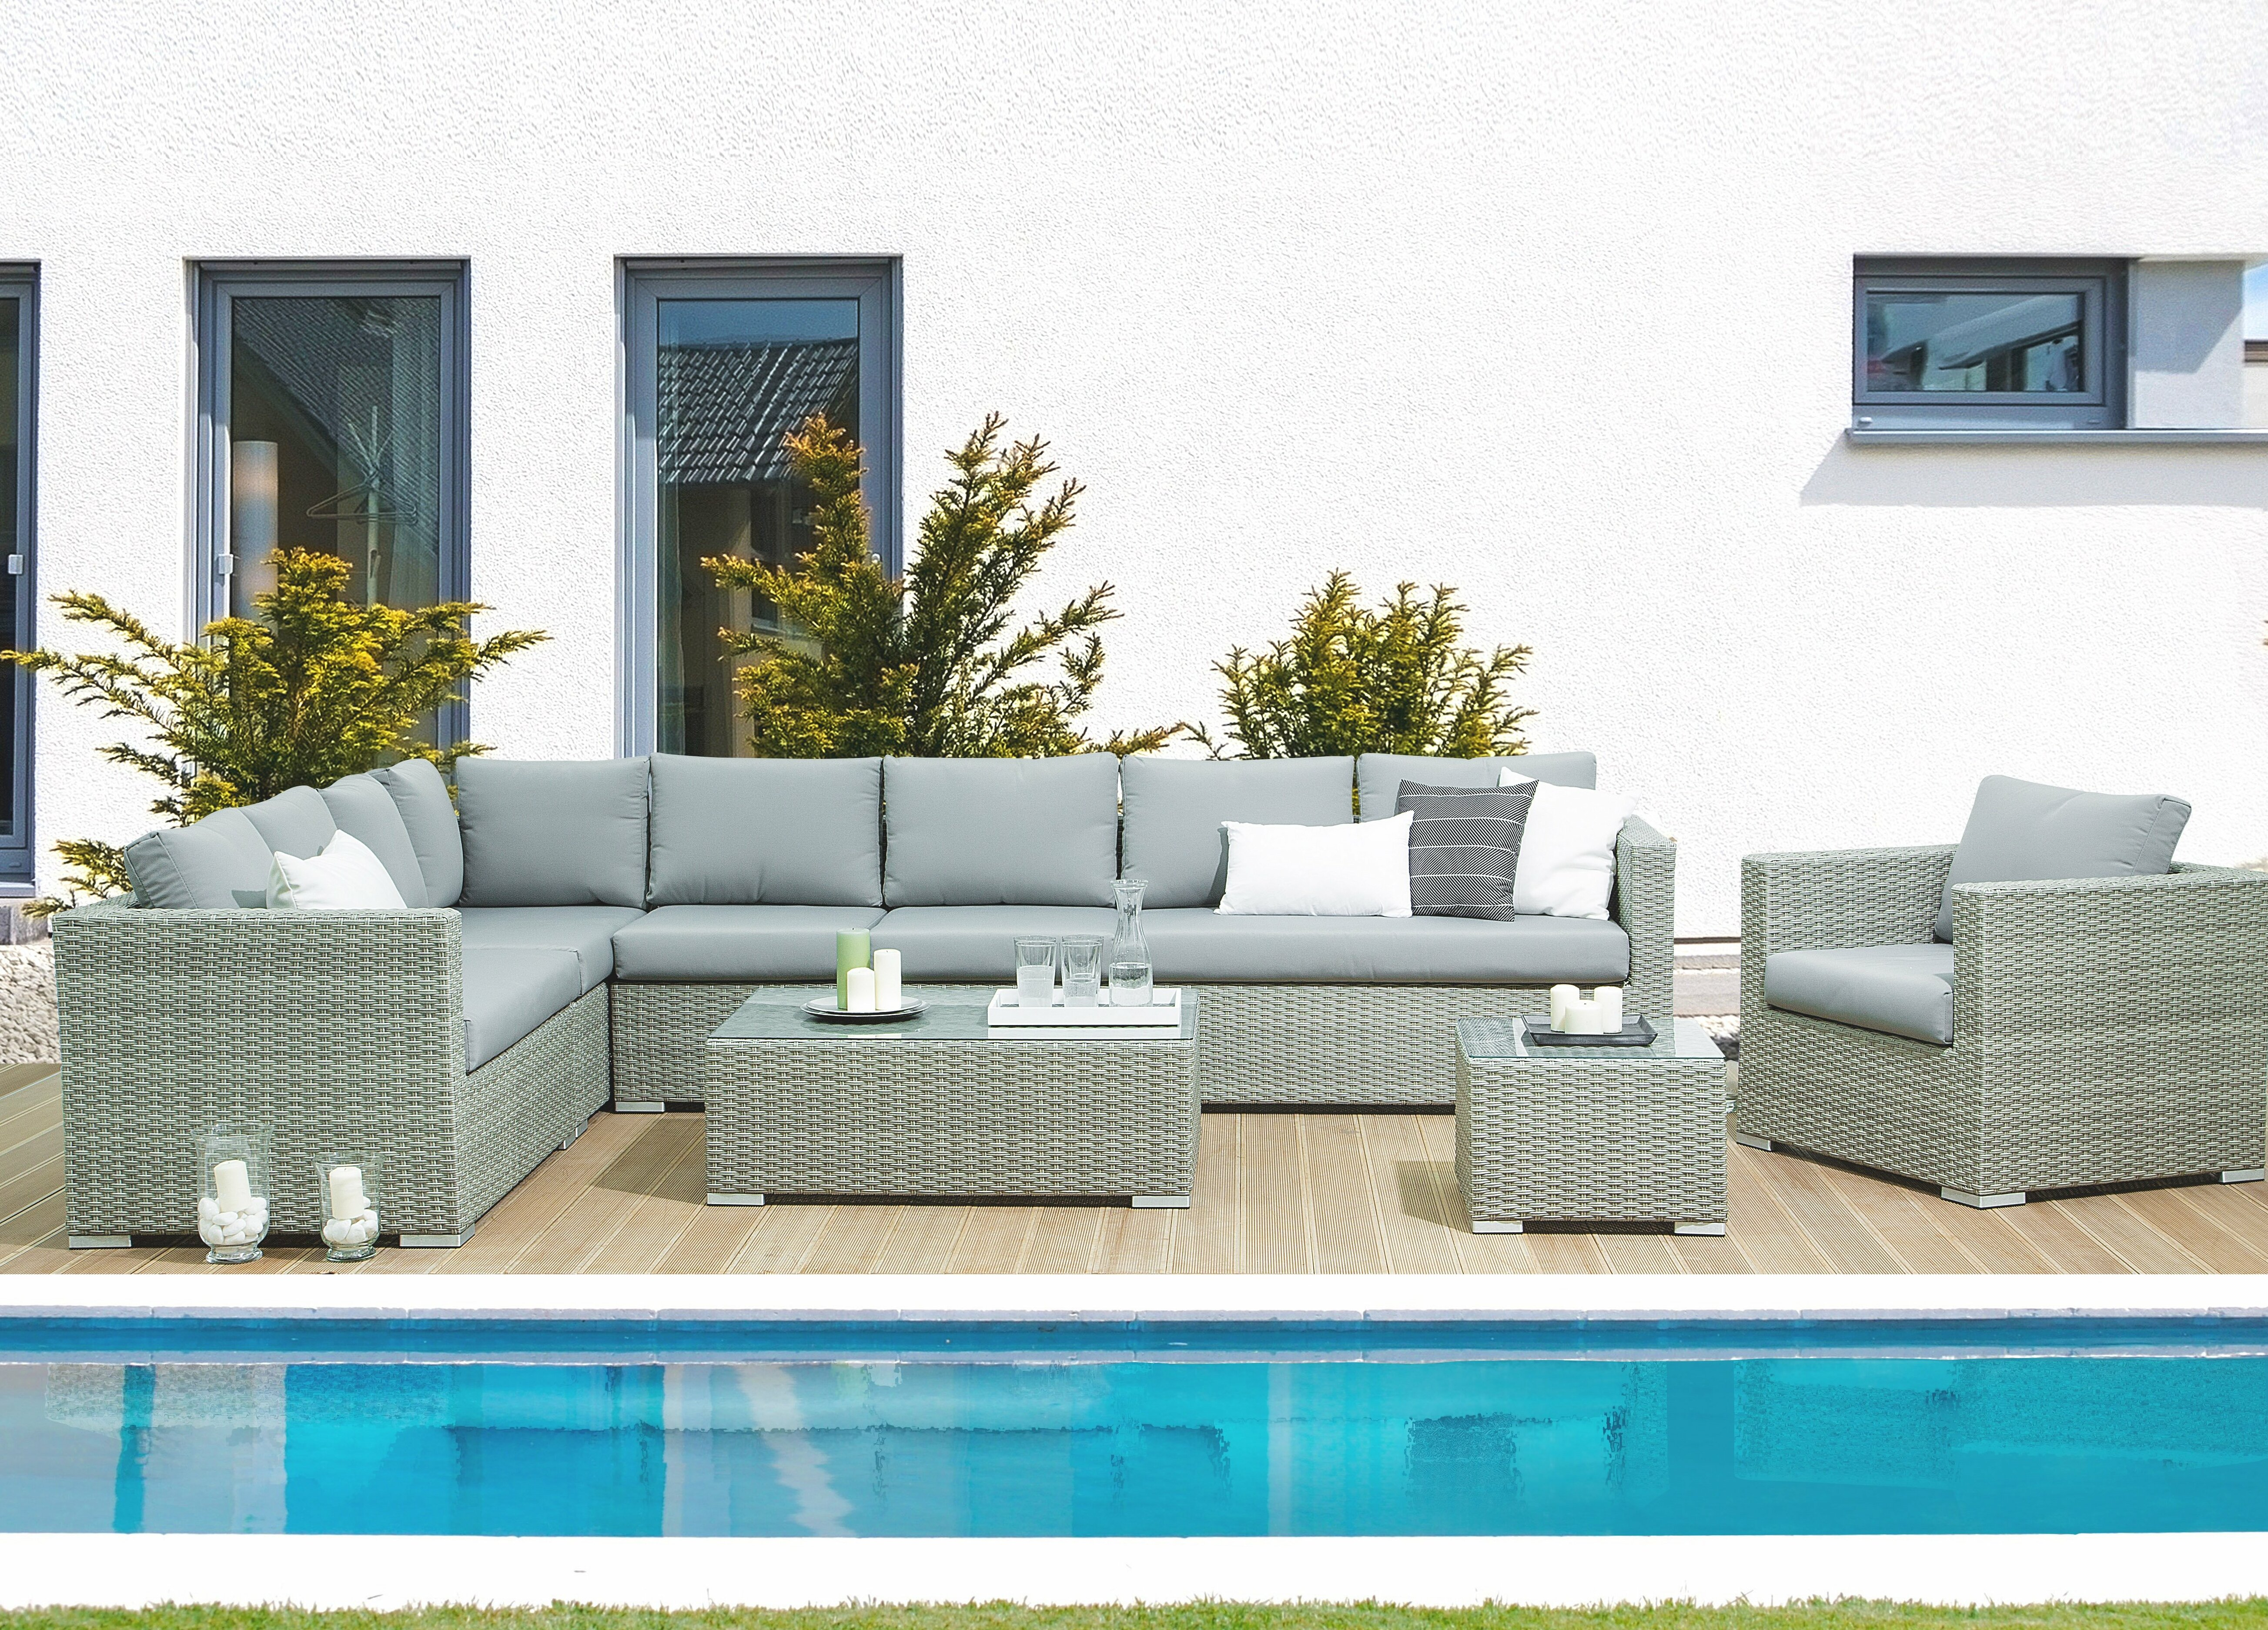 Brayden Studio Driscoll 4 Piece Rattan Sectional Seating Group With Cushions Wayfair